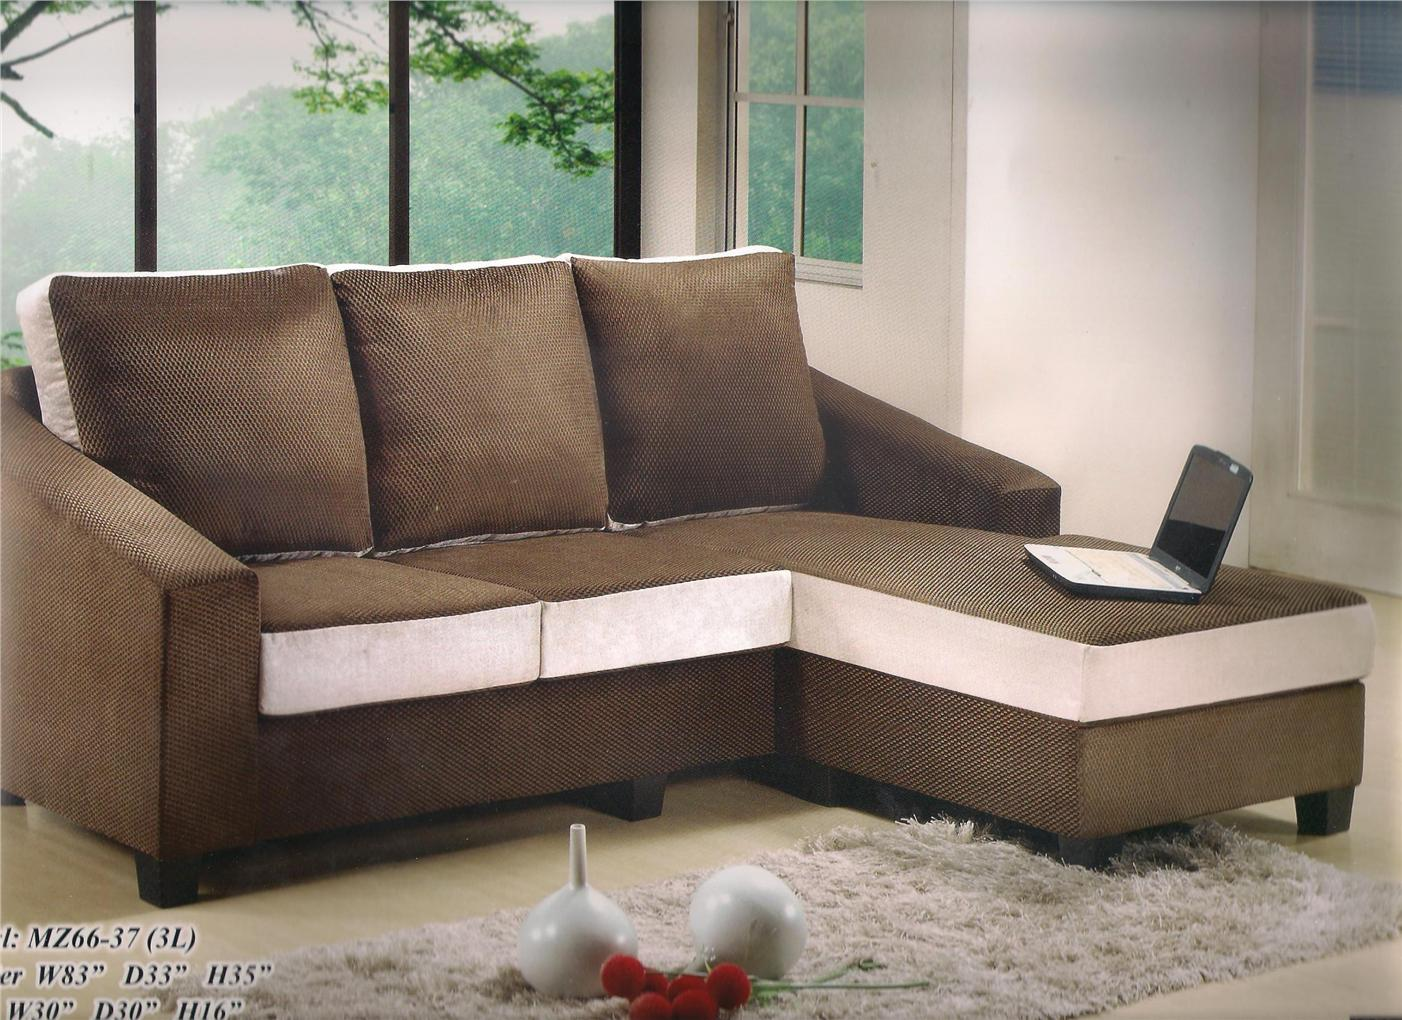 nicehome special offer price sofa L-shape +stool model-MZ6637